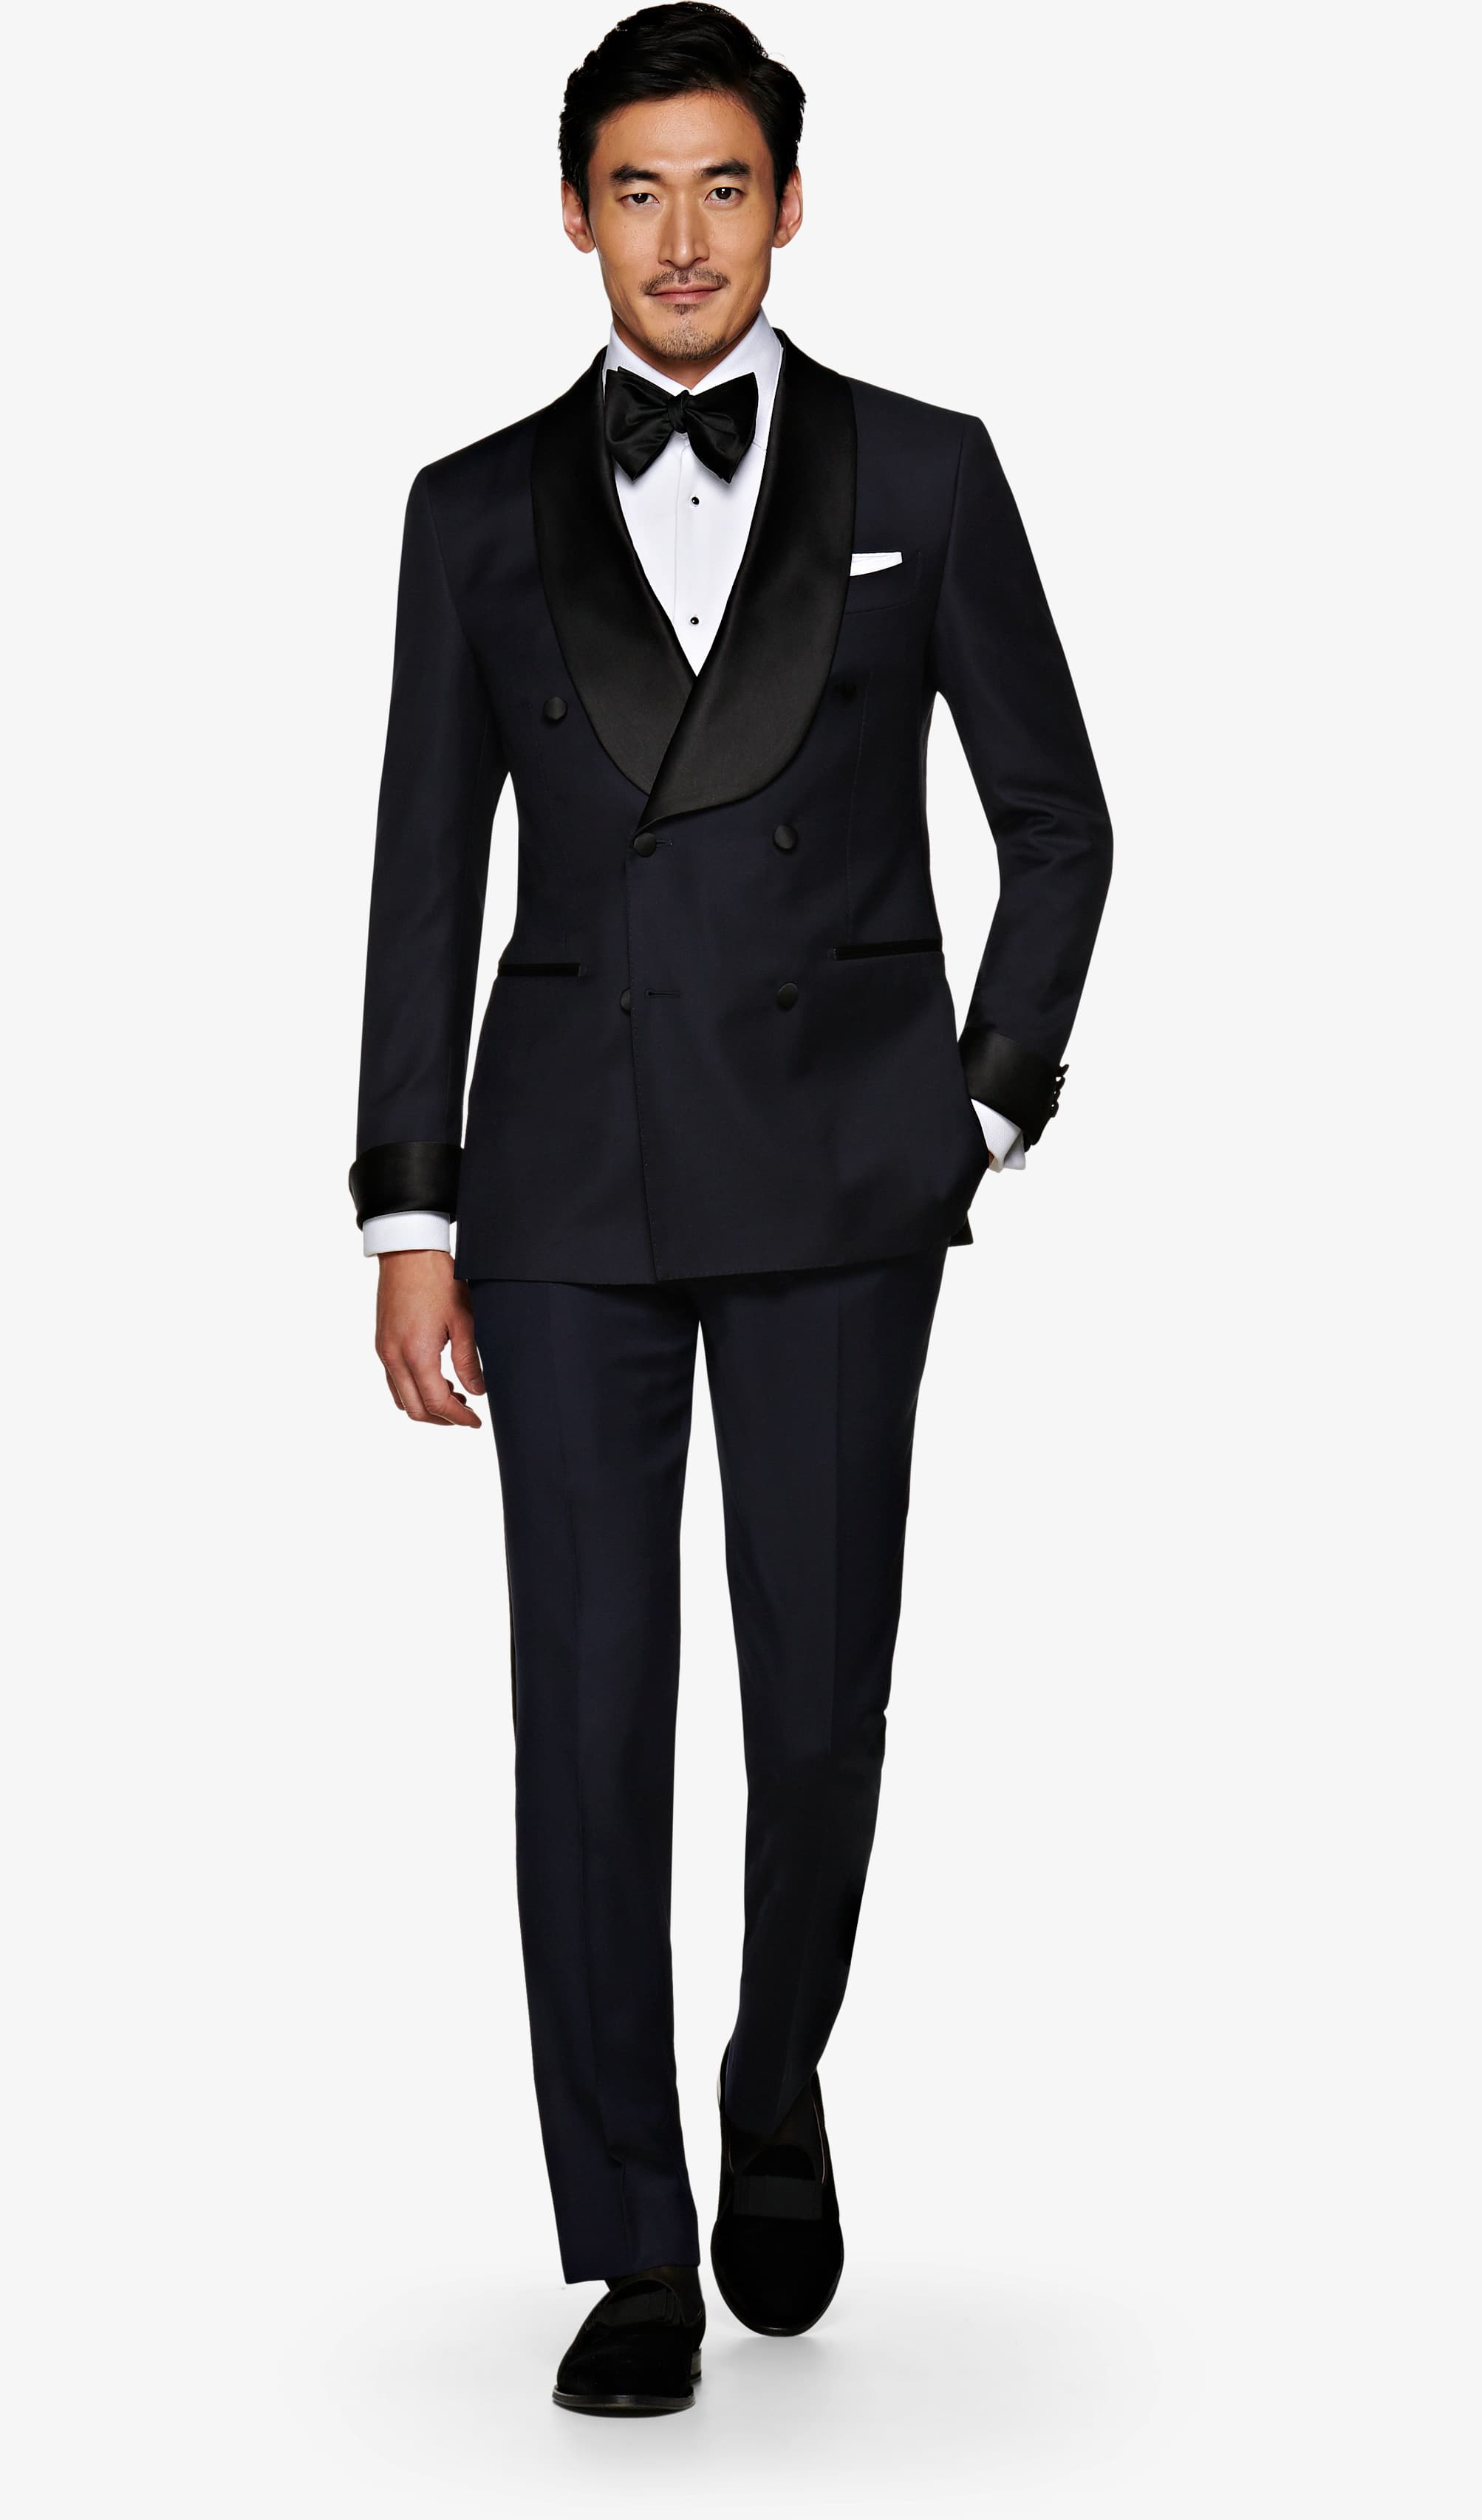 Suit_Navy_Plain_Jort_P5593I